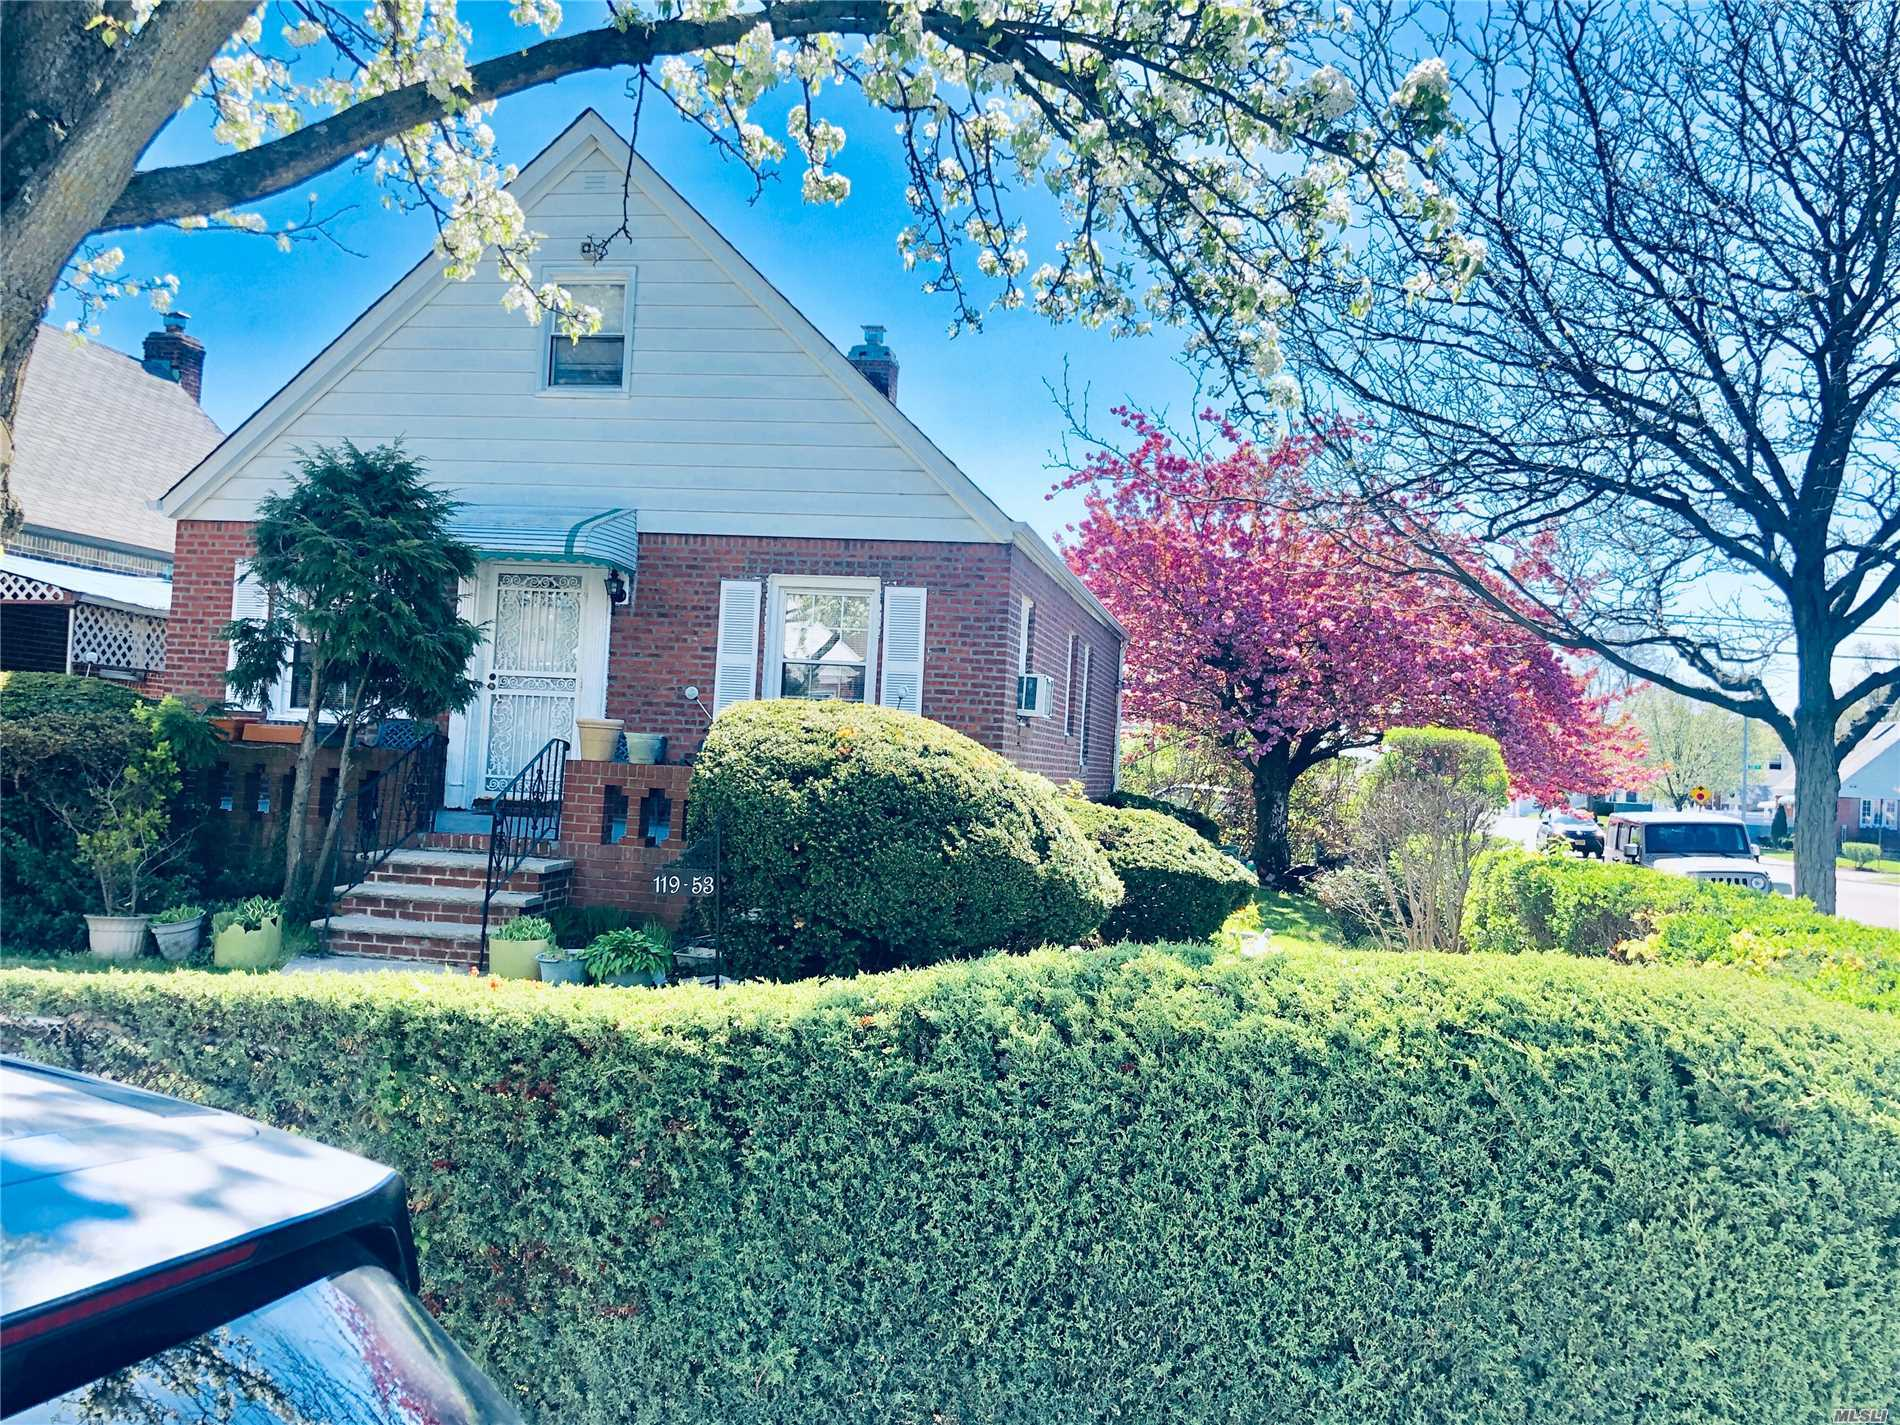 119-53 230th St, Cambria Heights, NY, 11411 - MLS# 3099173